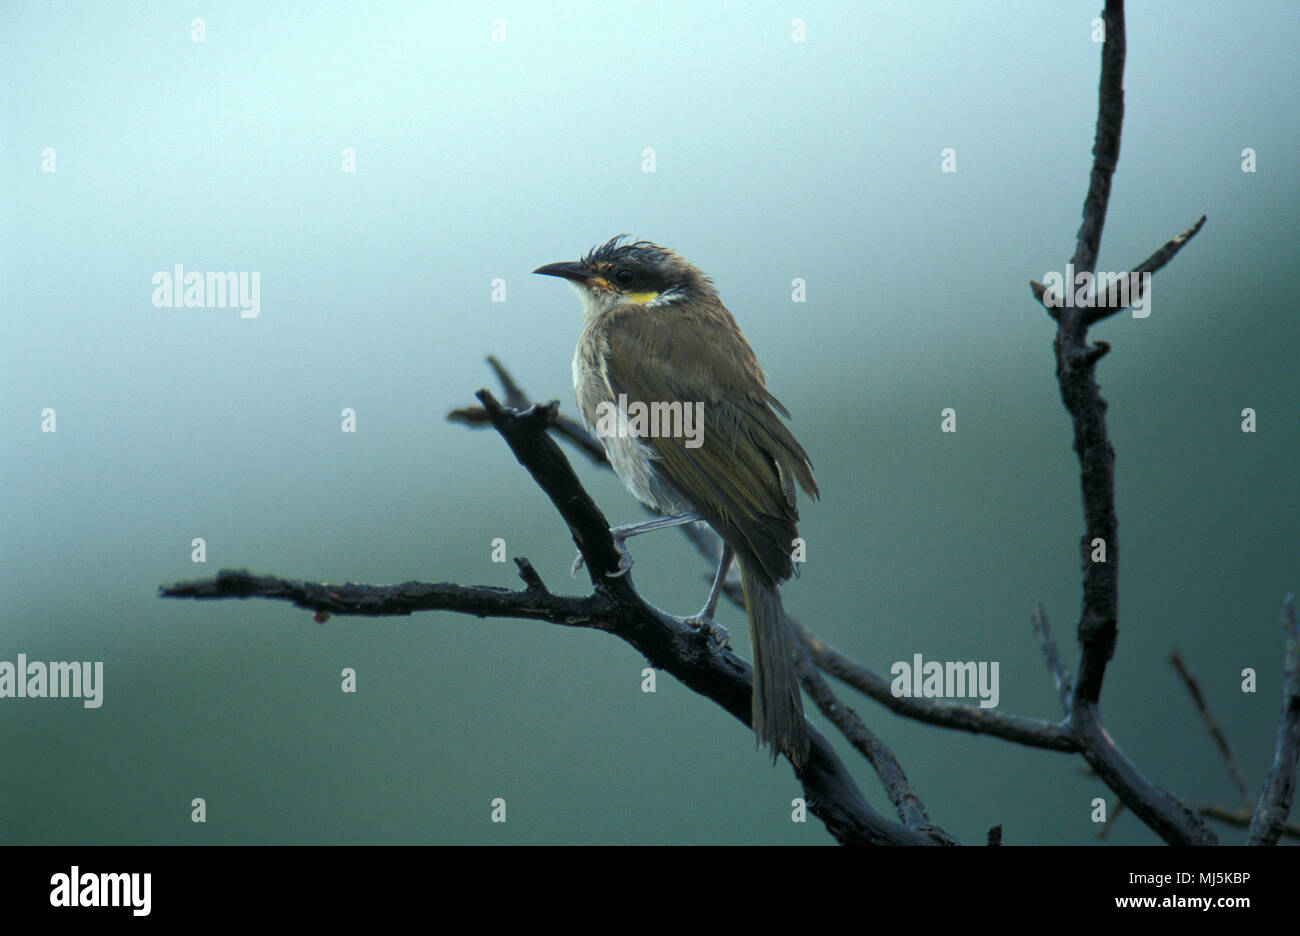 The Singing Honeyeater is a small bird found in Australia, and is part of the Honeyeater family, Meliphagidae - Stock Image